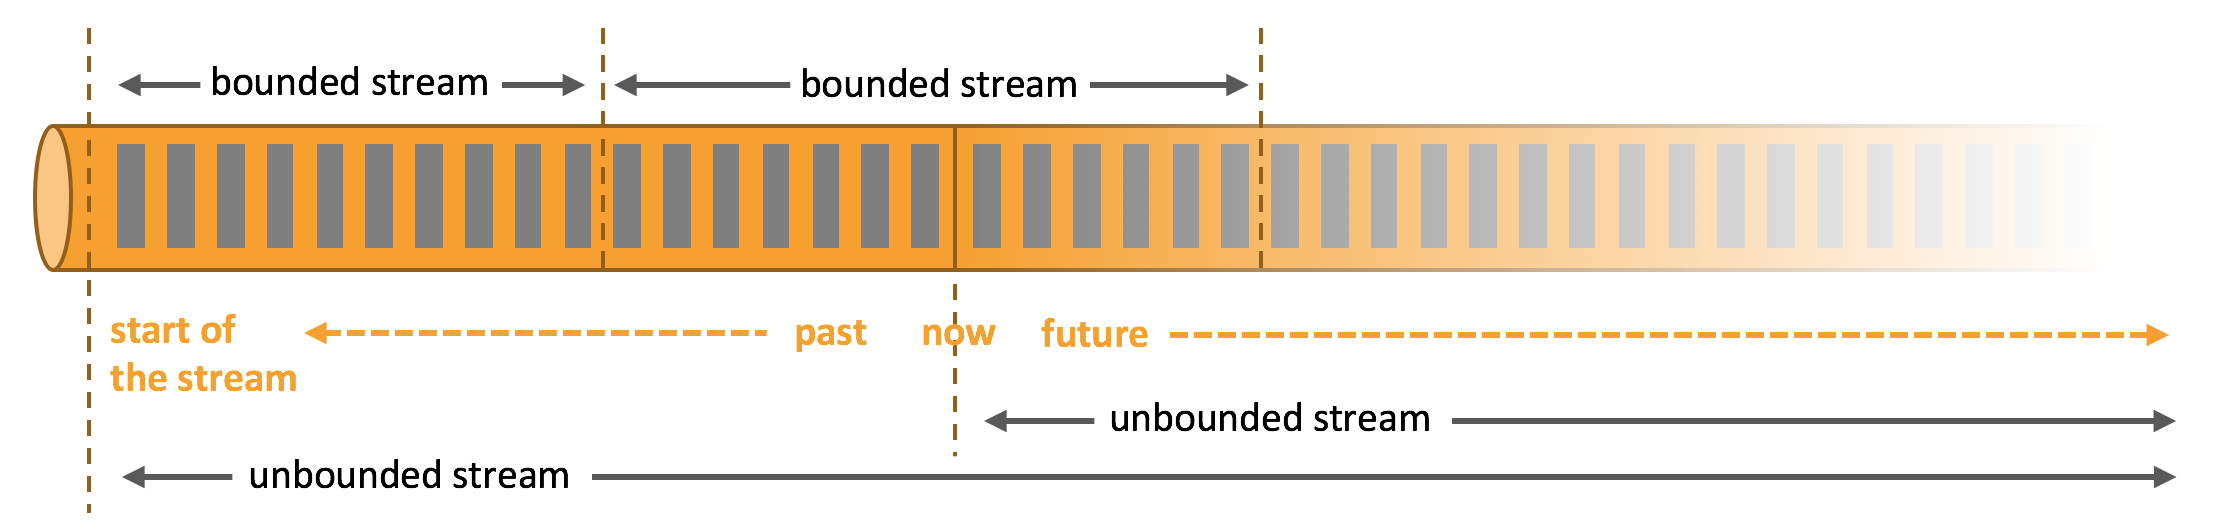 Apache Flink, unified data processing, batch processing, stream processing, Blink